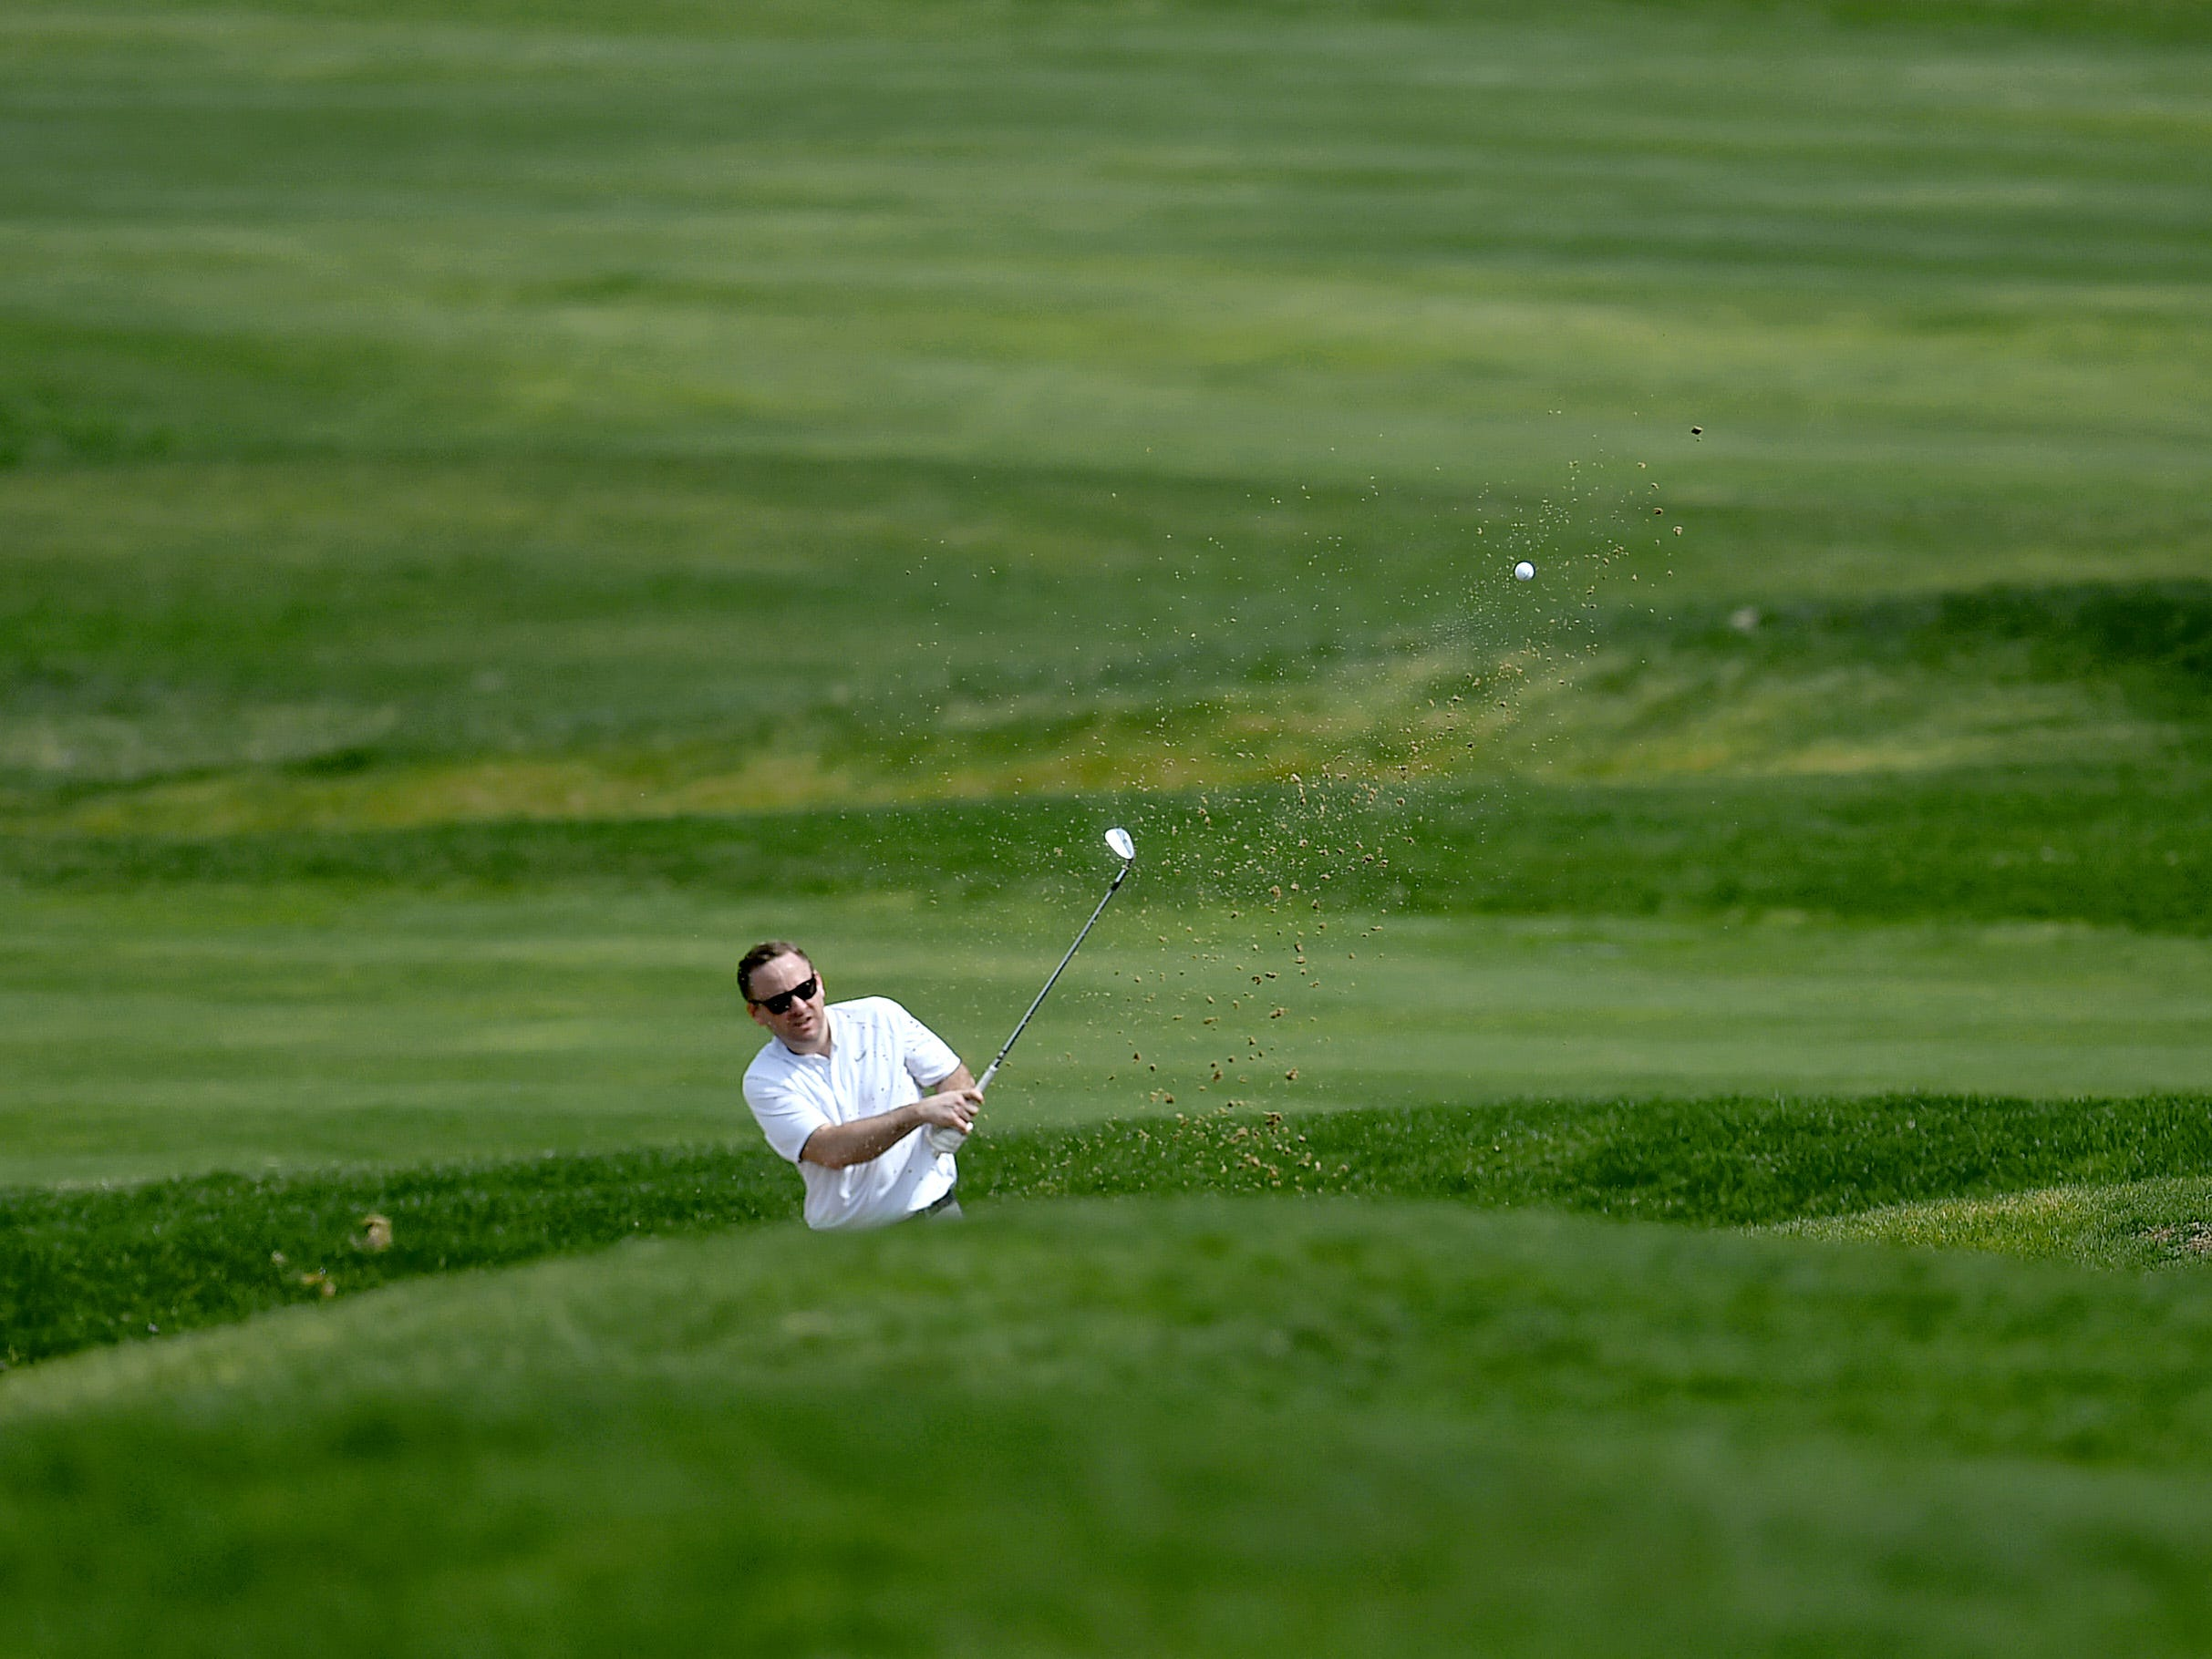 A golfer attempts to chip his way out of a sand trap at The Links at Hiawatha Landing in Apalachin on Tuesday, April 23, 2019.